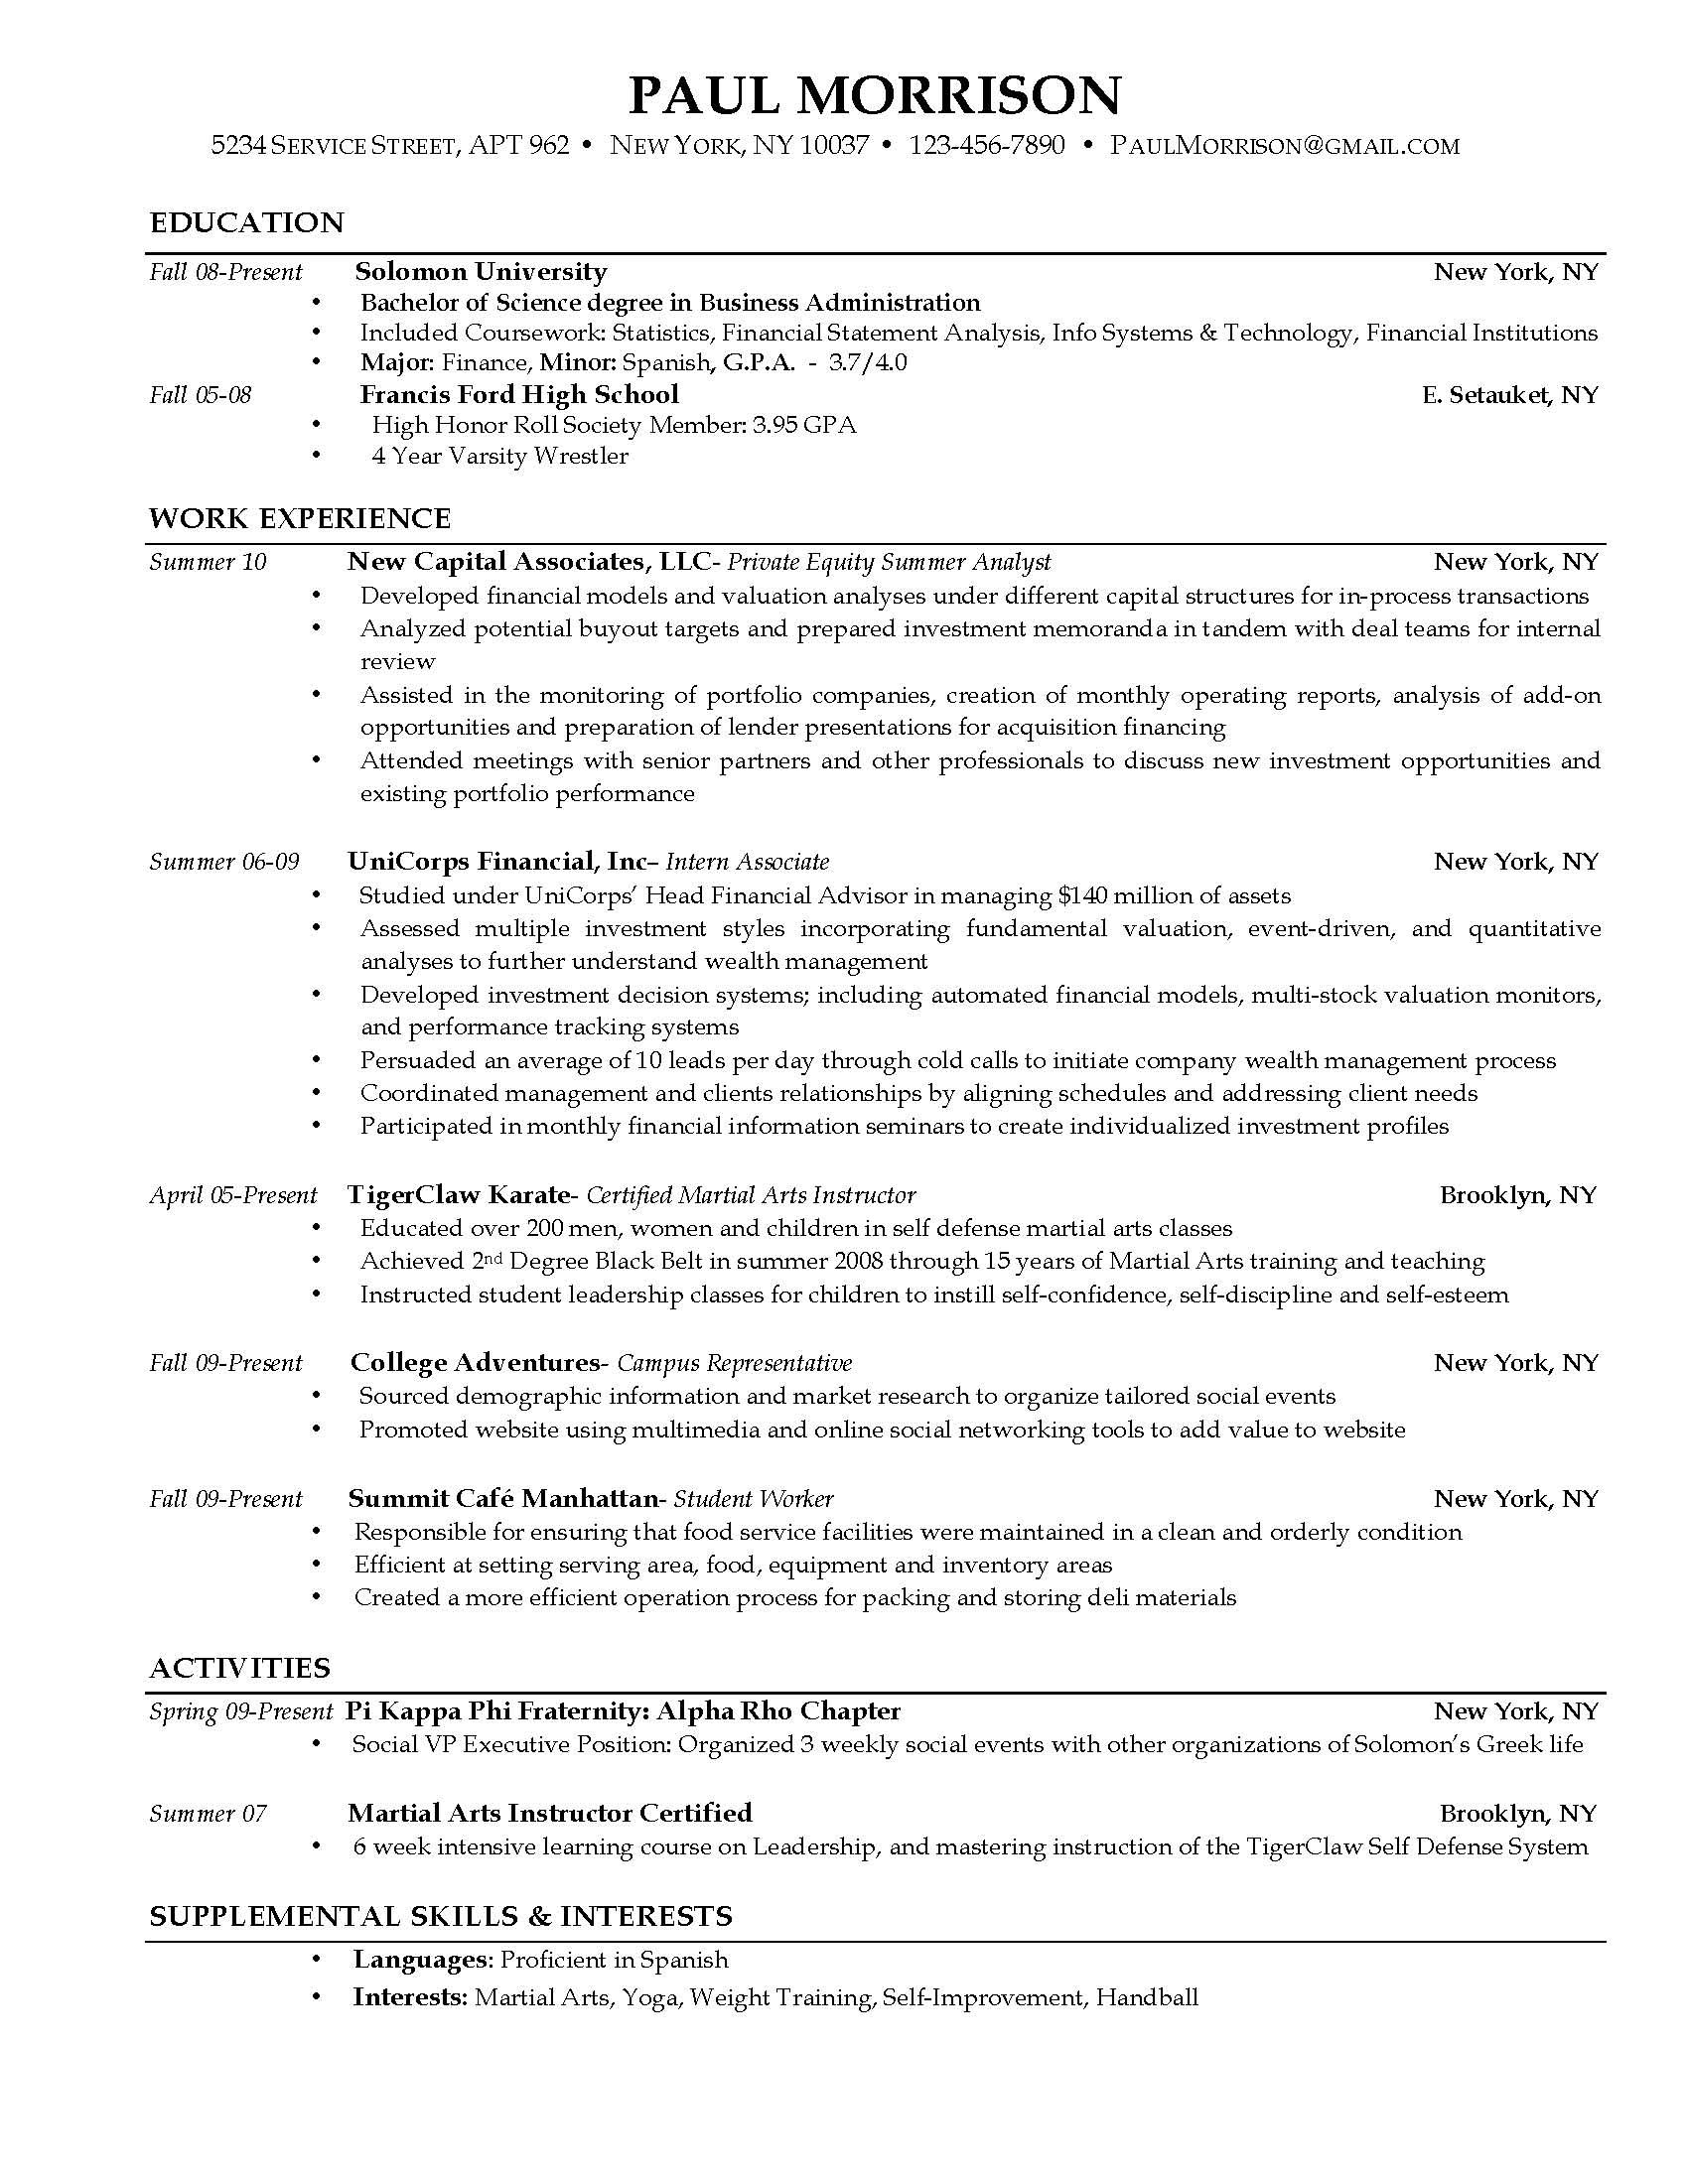 Current College Student Resume Template Pin By Resumejob On Resume Job Pinterest Student